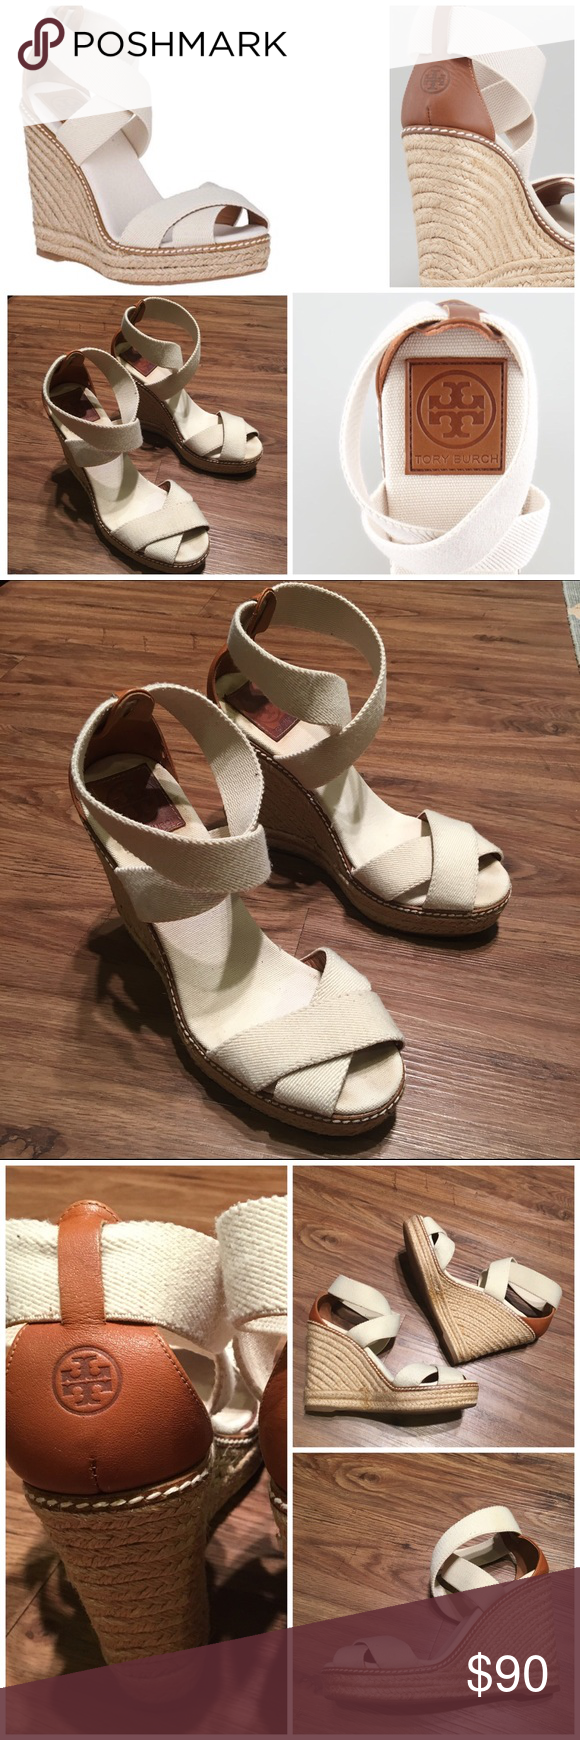 23effe32e23 Tory Burch Adonis Stretch Espadrille Wedge, ivory Gently worn and in ...